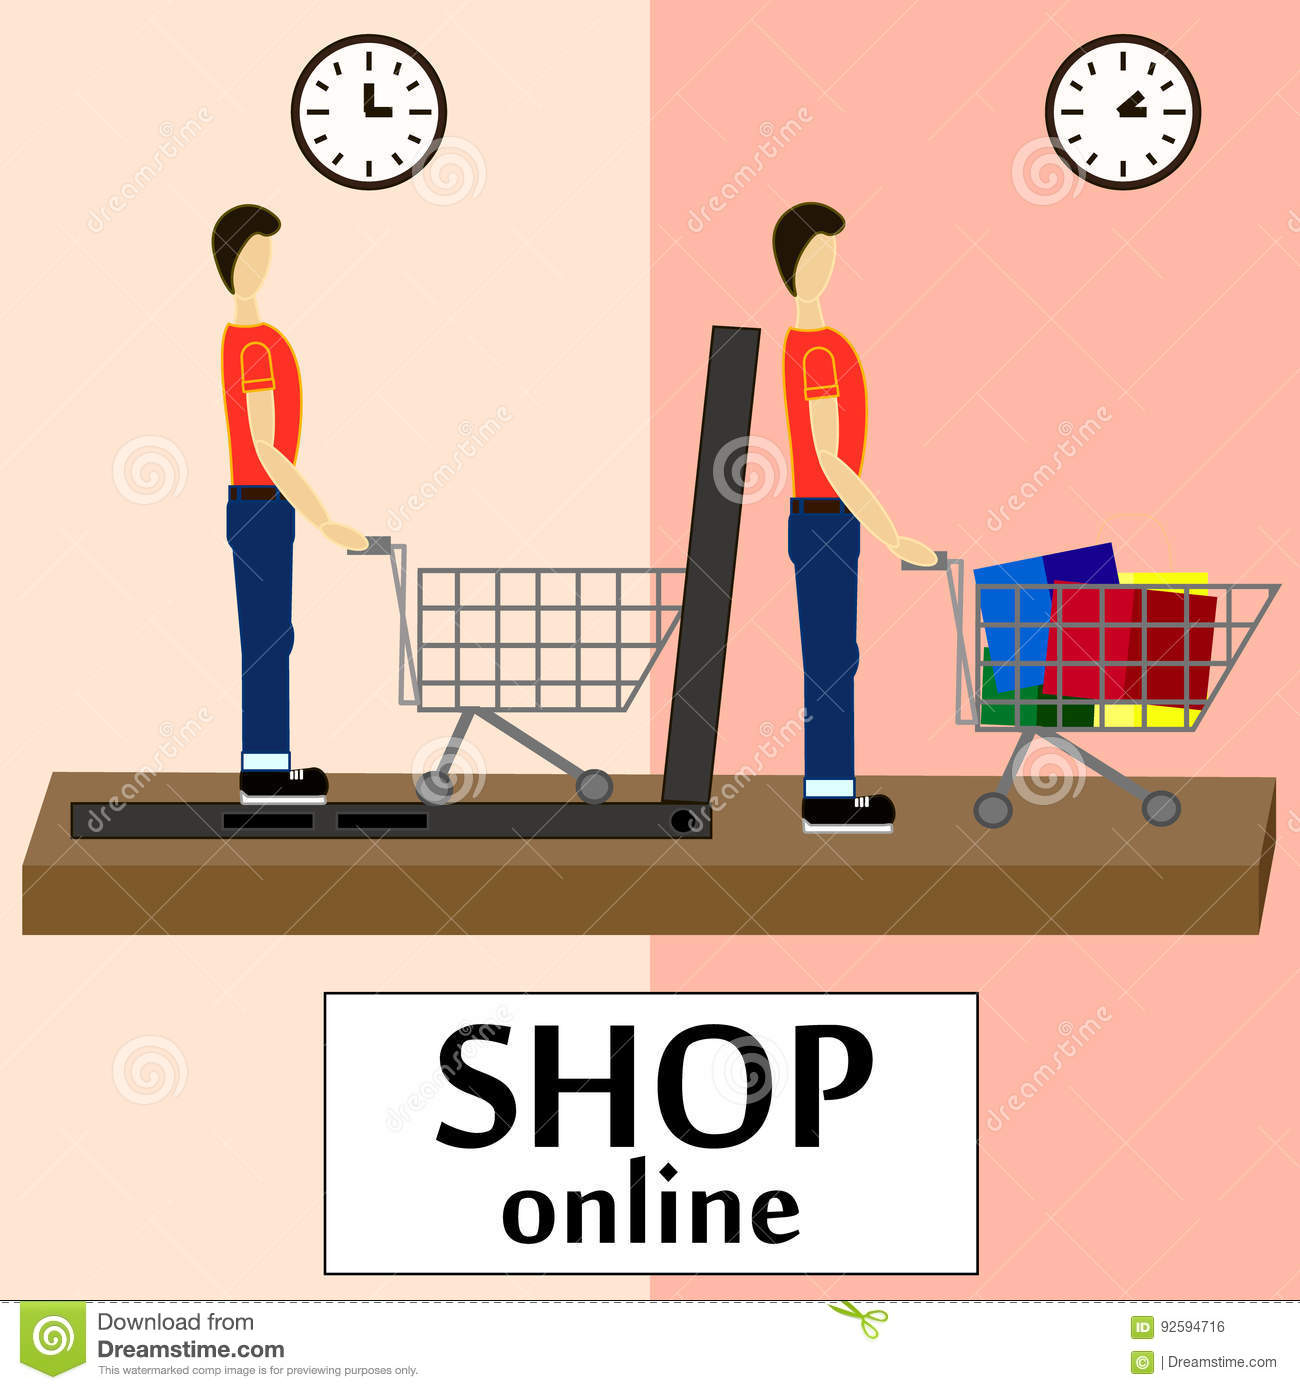 Onlineshop cartoons illustrations vector stock images for Online retailer for sale